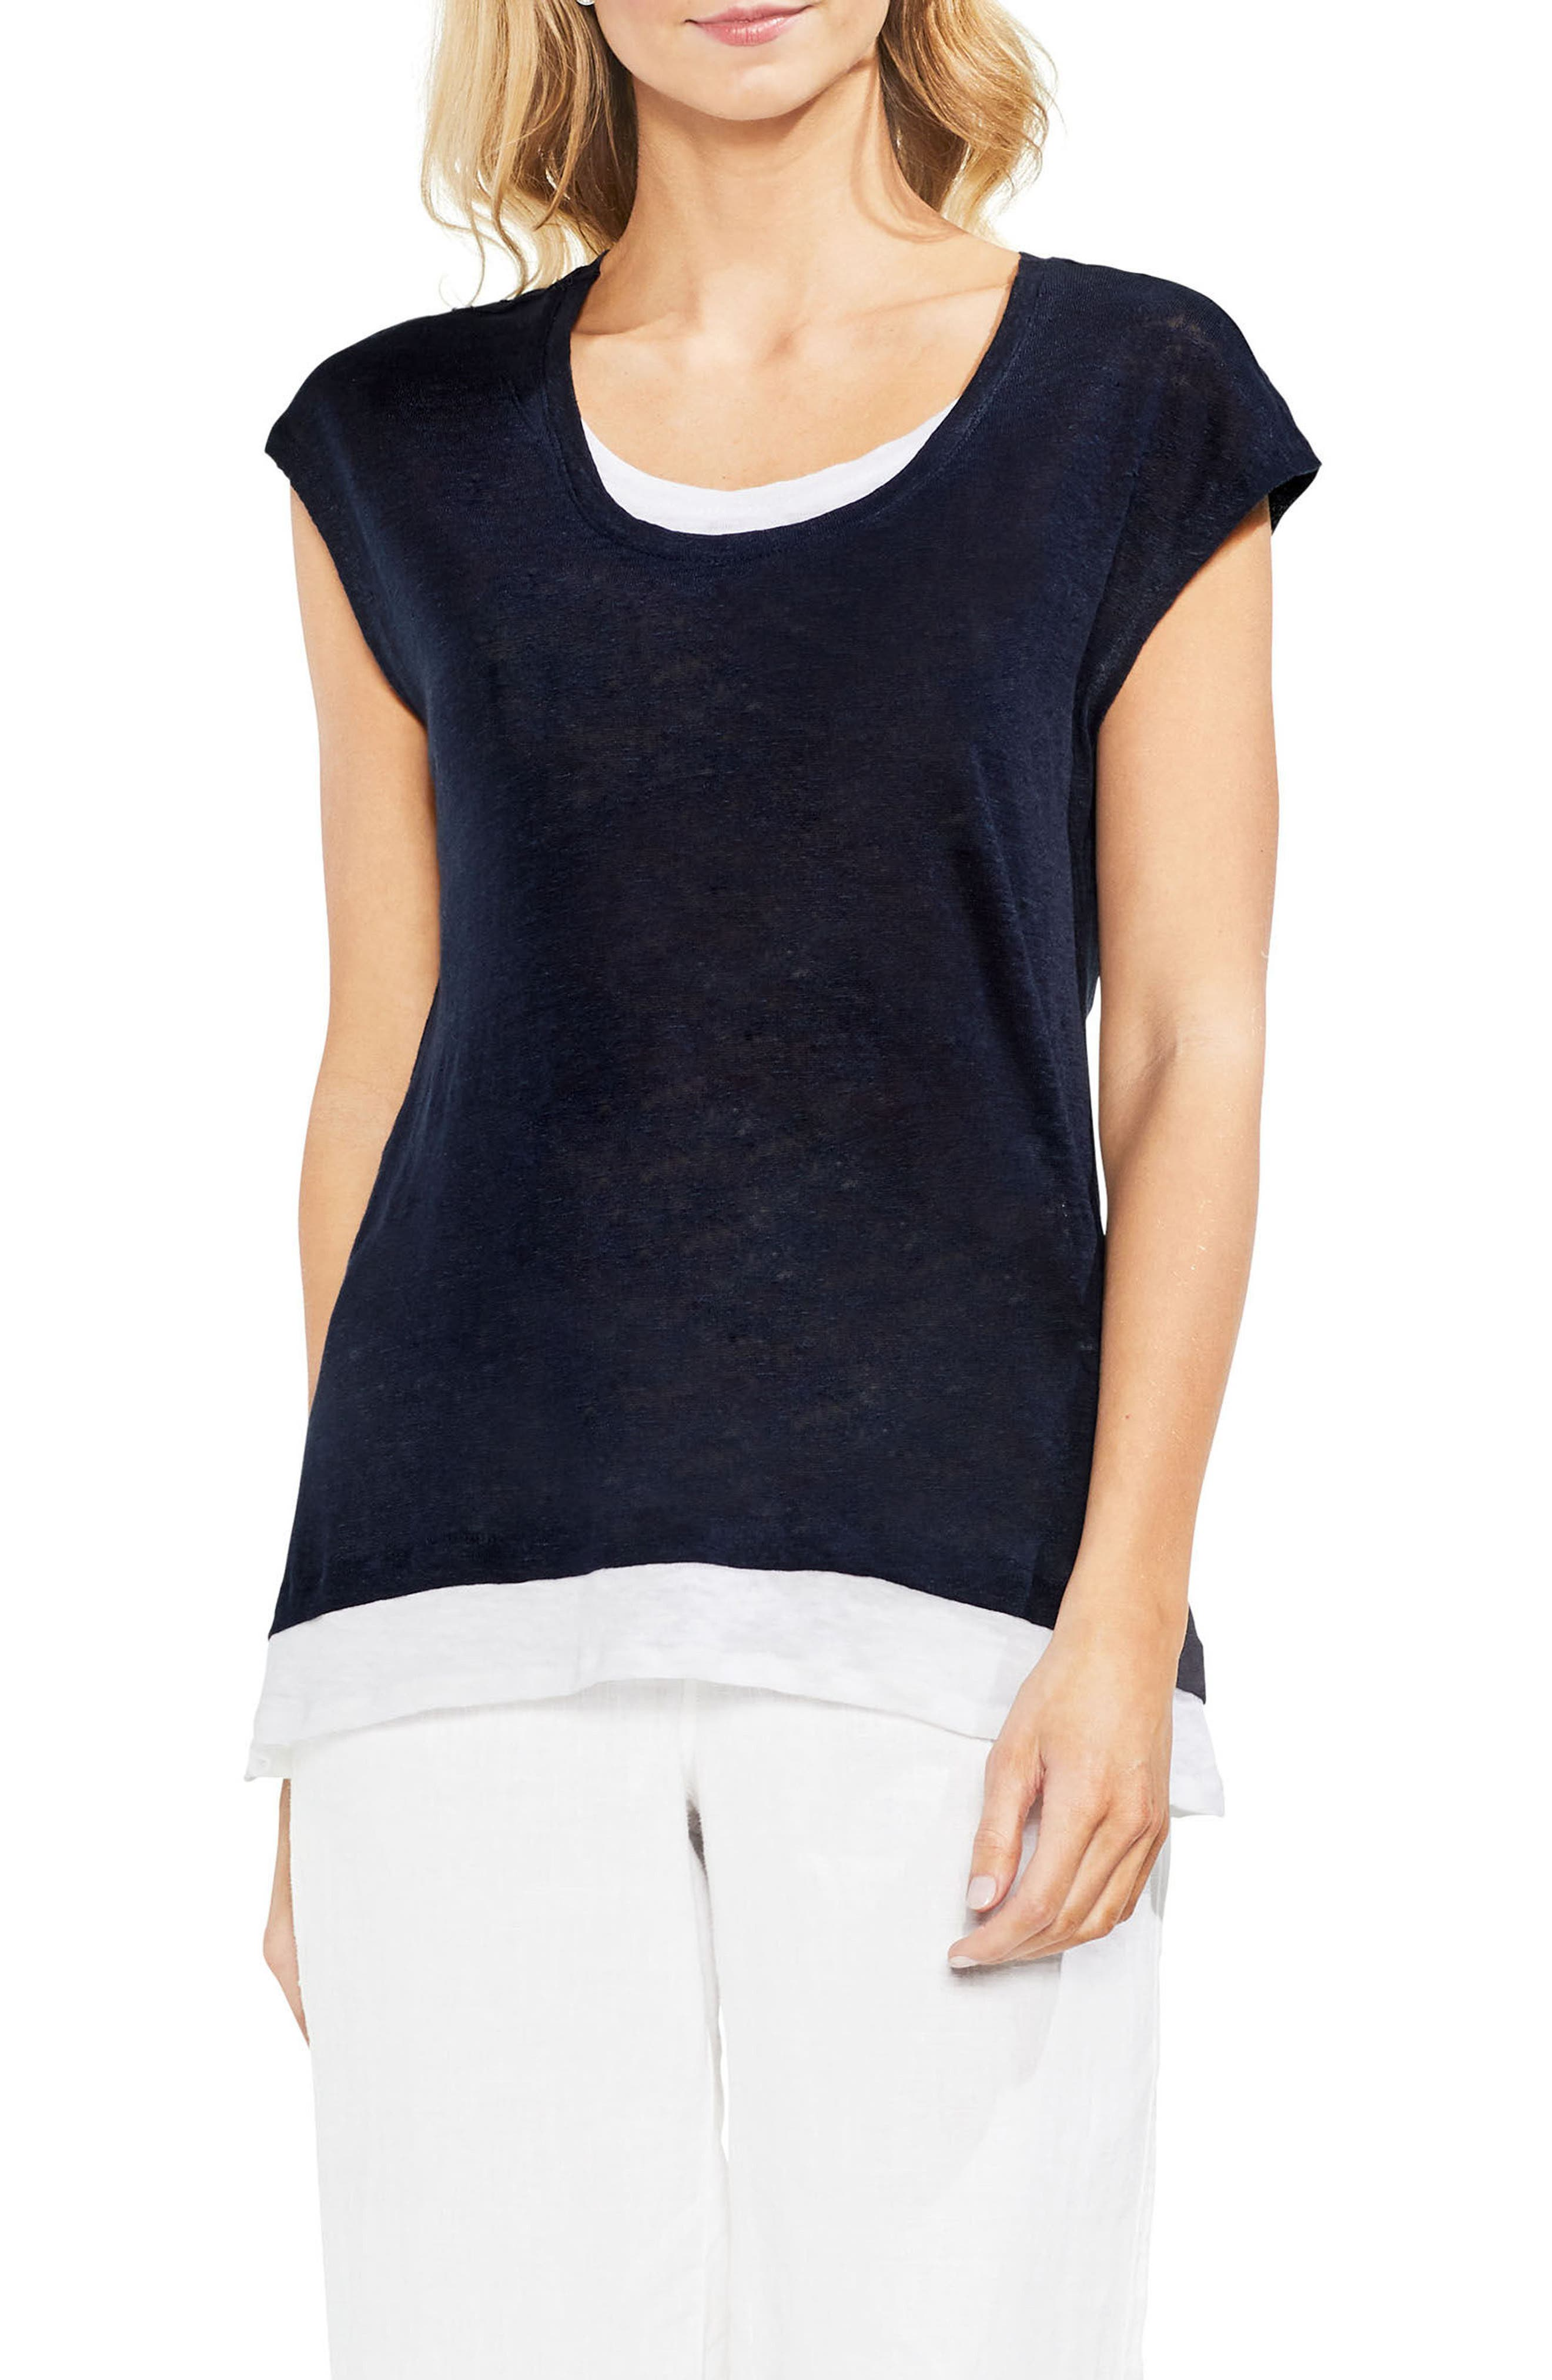 Vince Camuto Layered Look Scoop Neck Tee